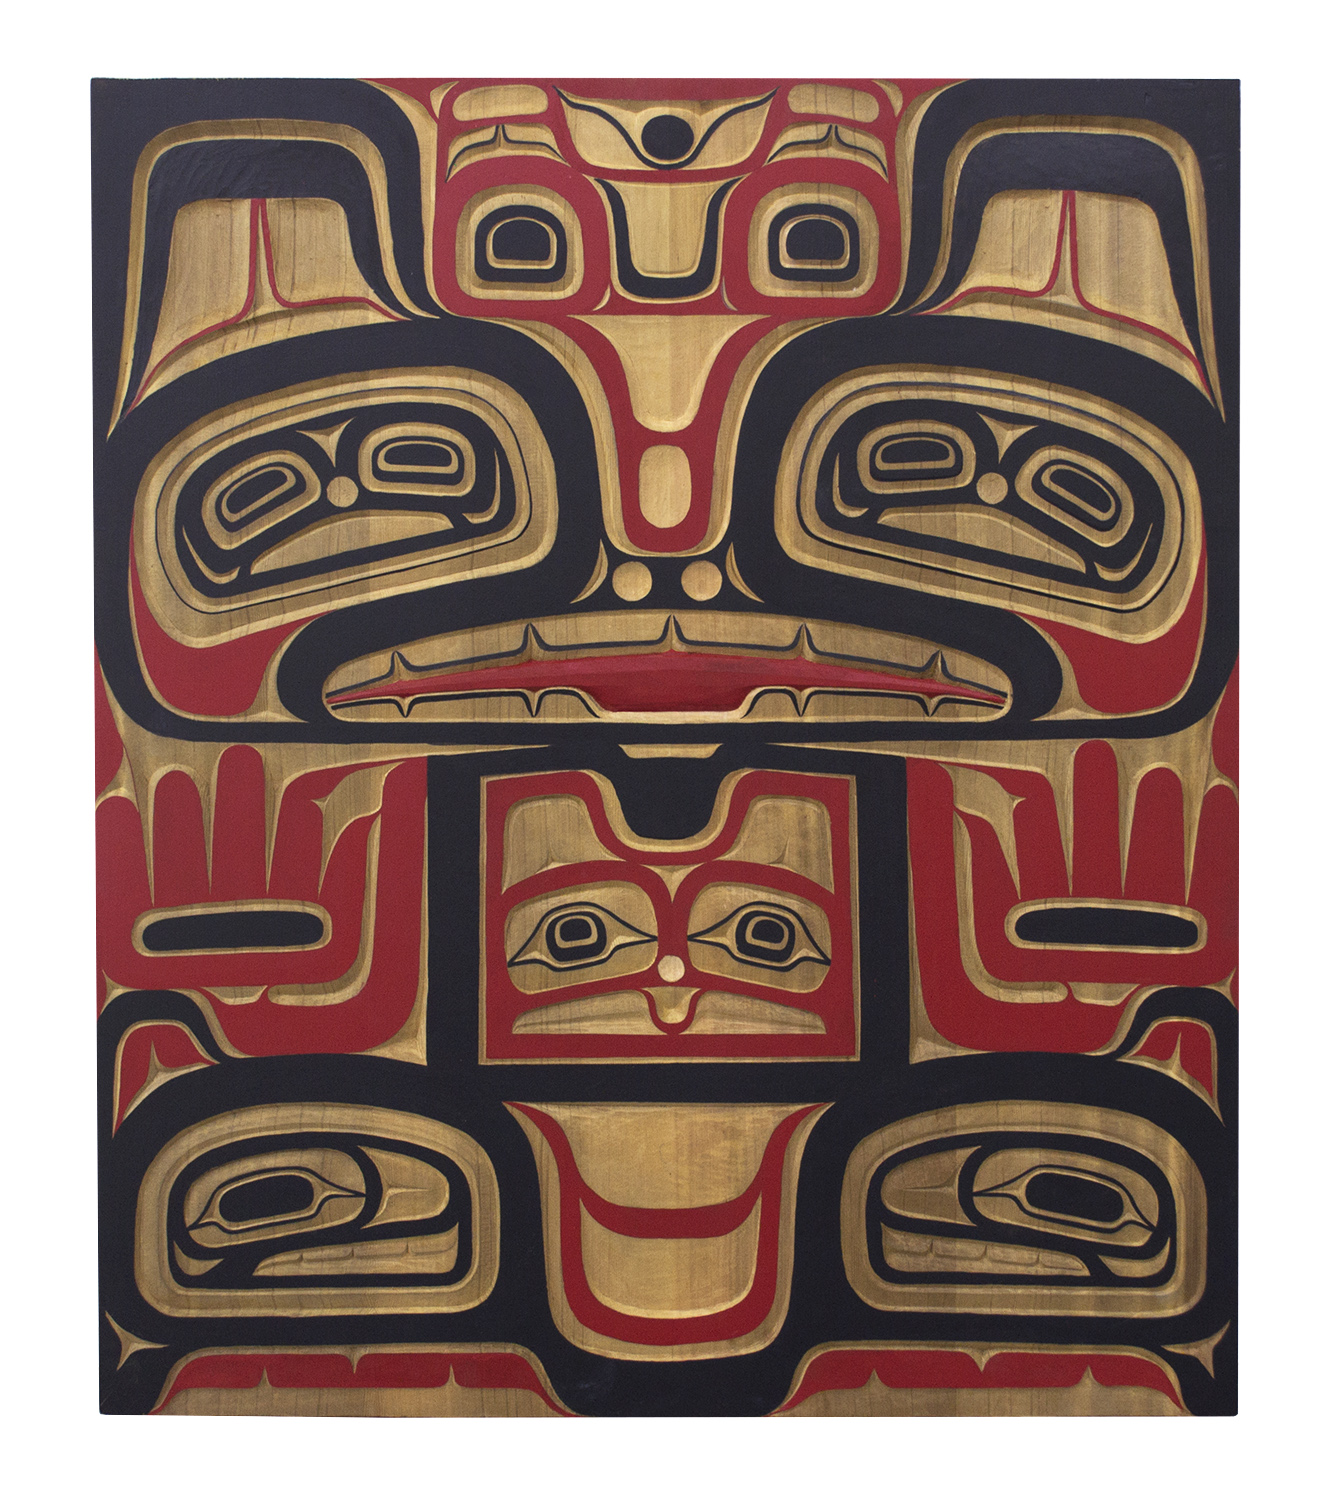 "Tlingit Bear Panel, 2017, Alan Hunt (Kwakwaka'wakw), Hand carved red cedar, acrylic, 36"" x 30"" x 2"", $7,000"